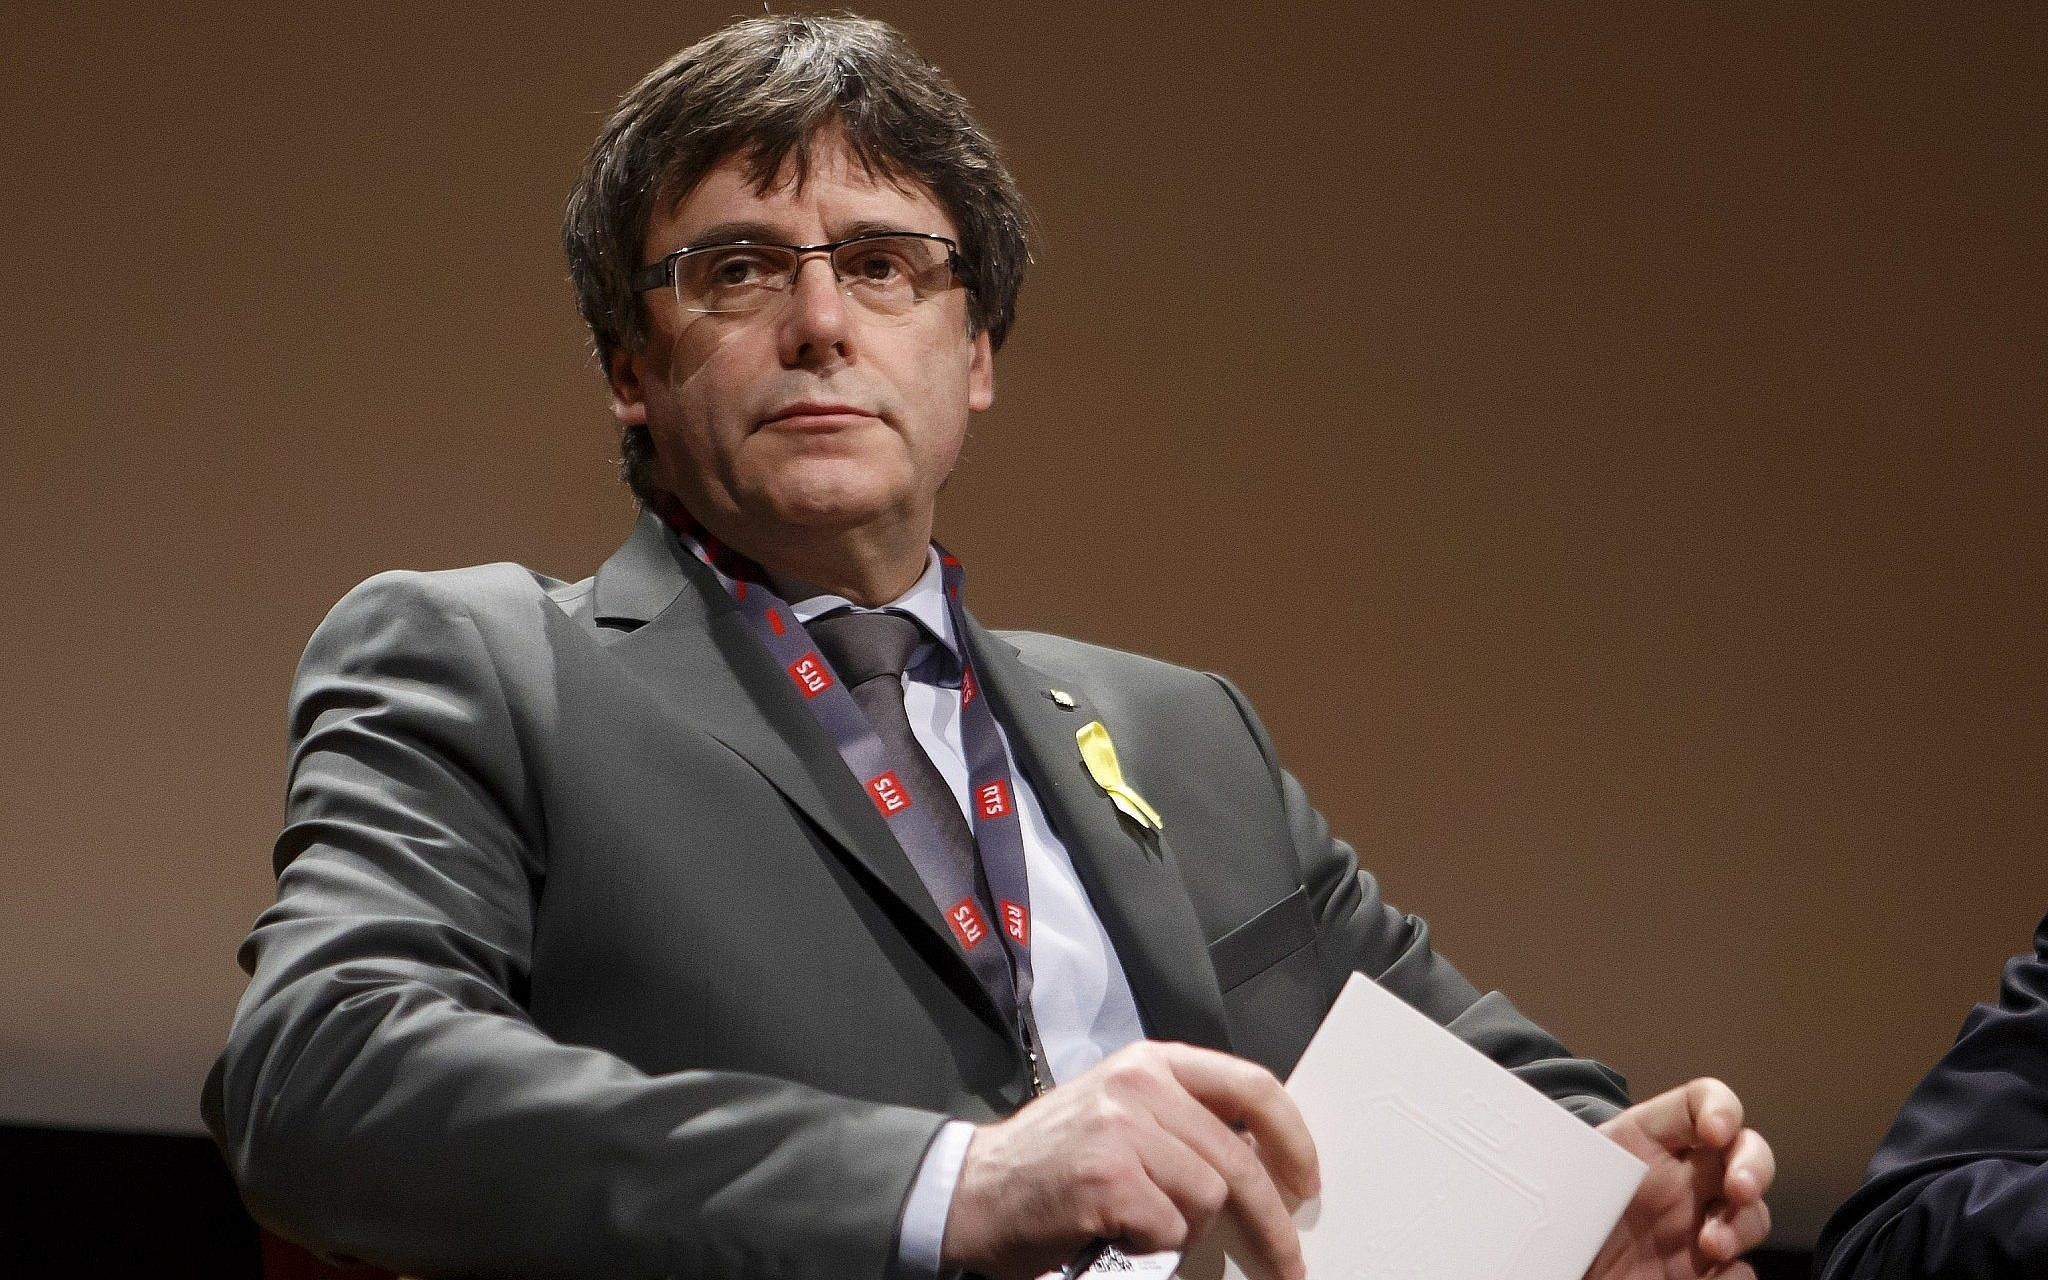 Carles Puigdemont Arrested in Germany